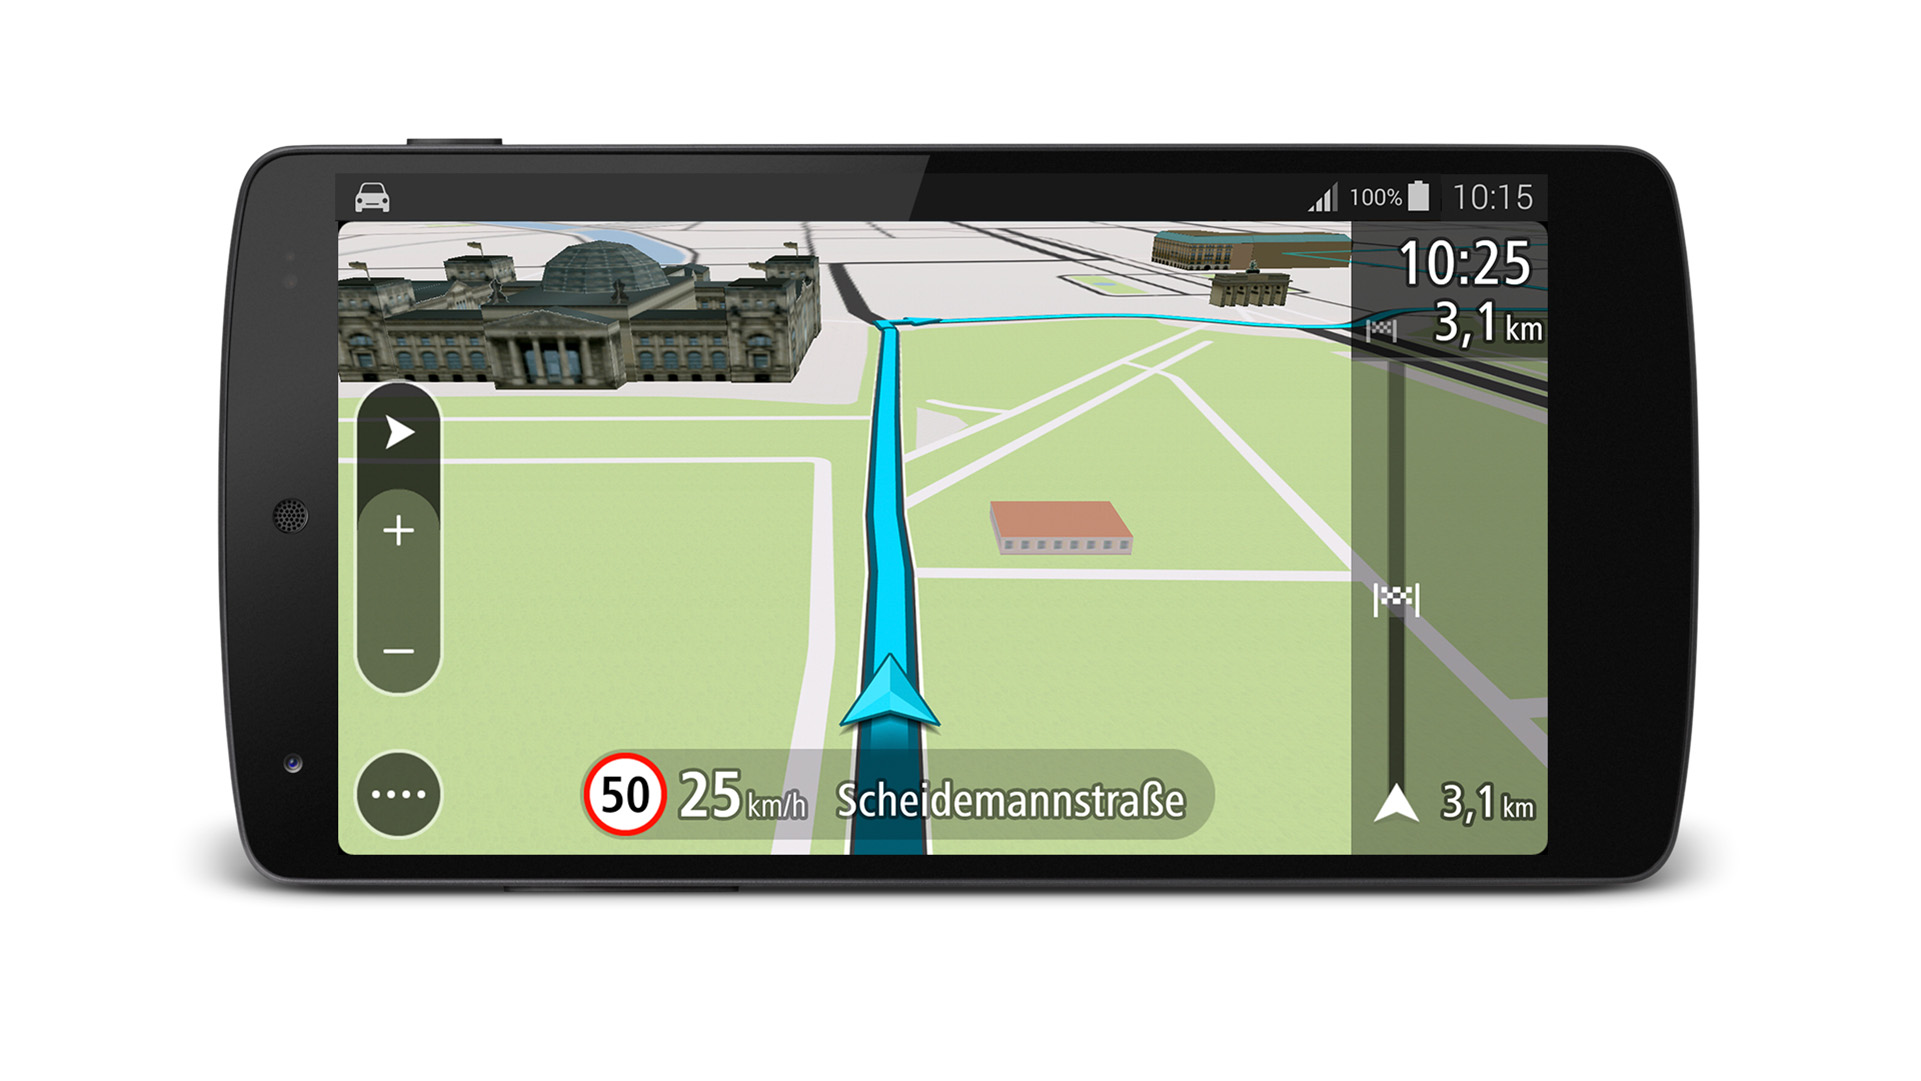 tomtom go mobile neue android app weltweit verf gbar navigation gps. Black Bedroom Furniture Sets. Home Design Ideas